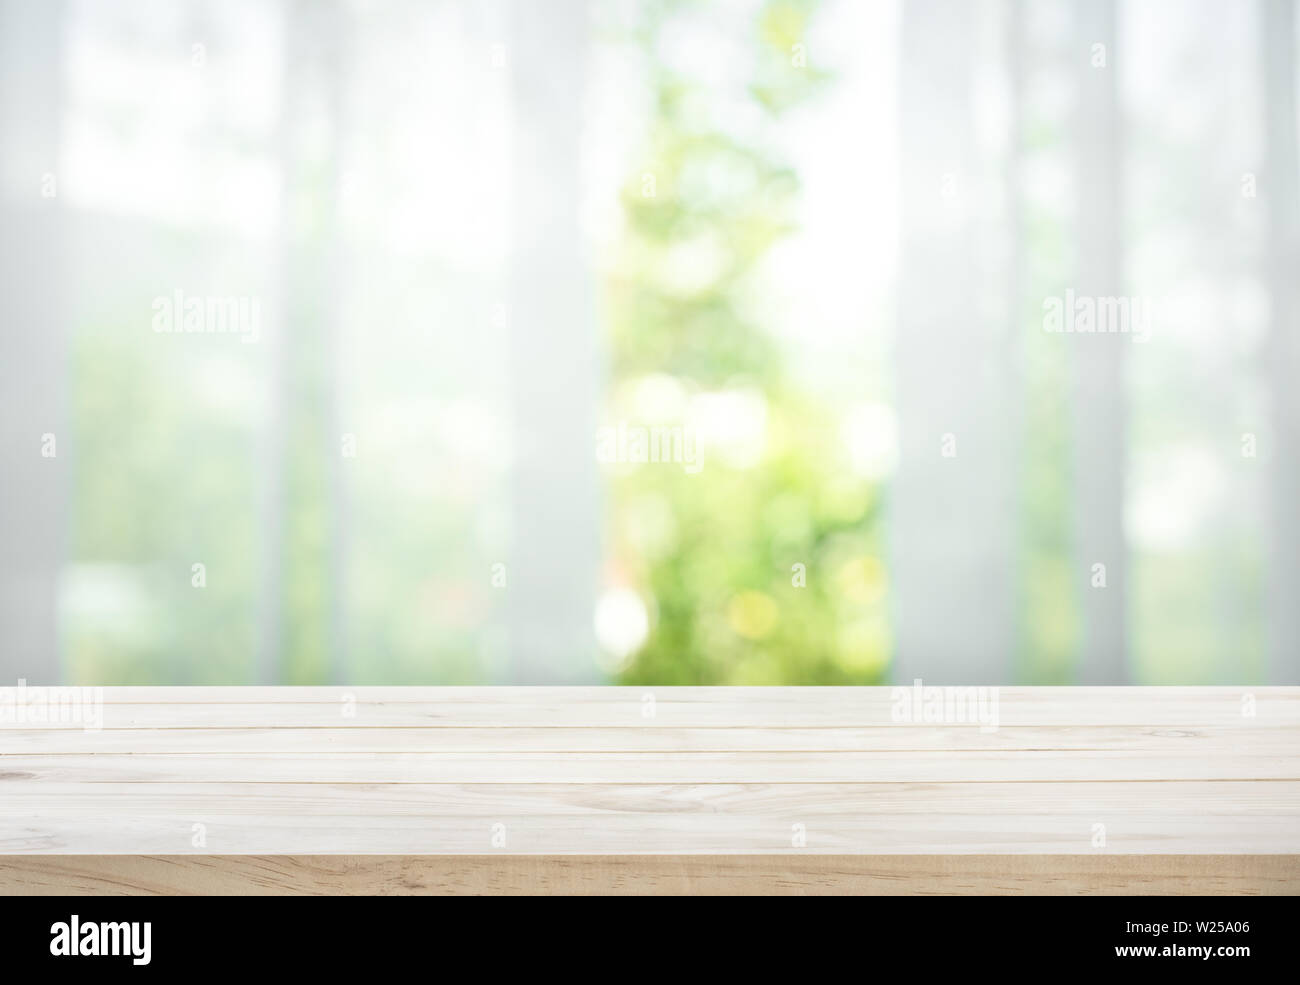 Empty of wood table top on blur of curtain with window view green from tree garden background.For montage product display or design key visual layout Stock Photo